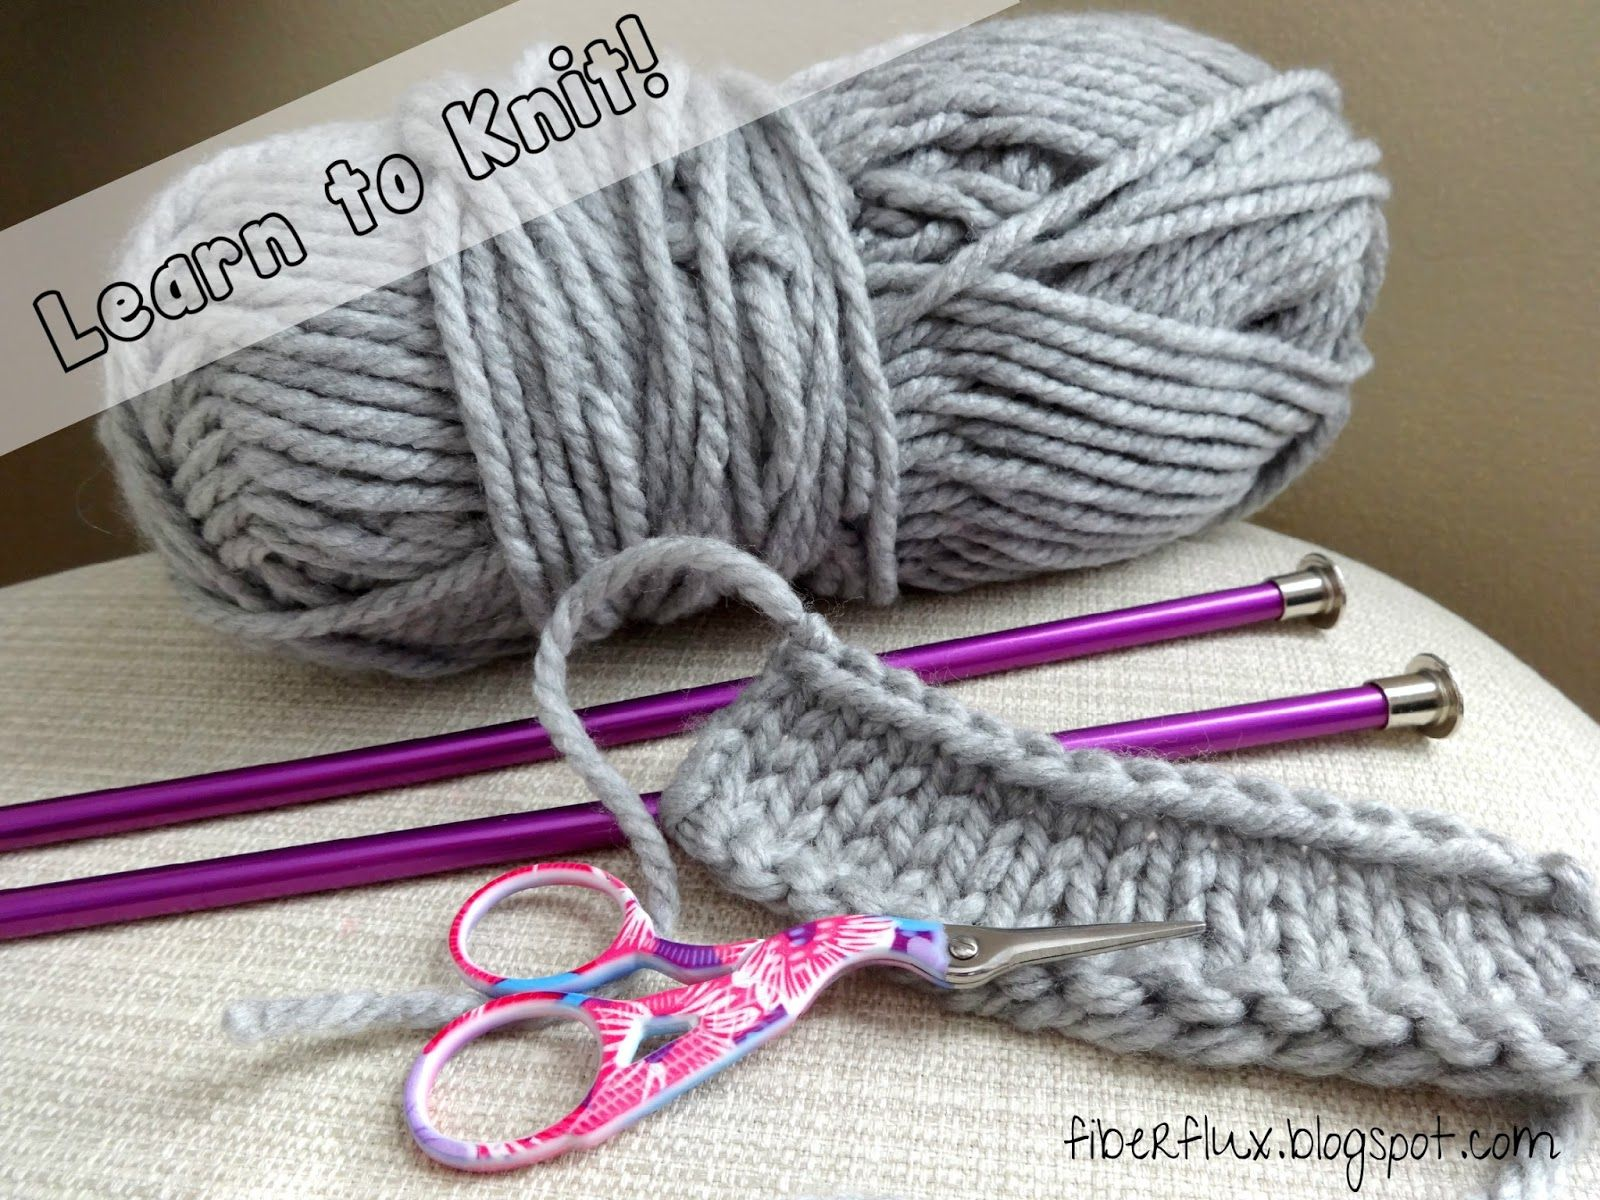 How to learn knitting and sewing - mumsnet.com